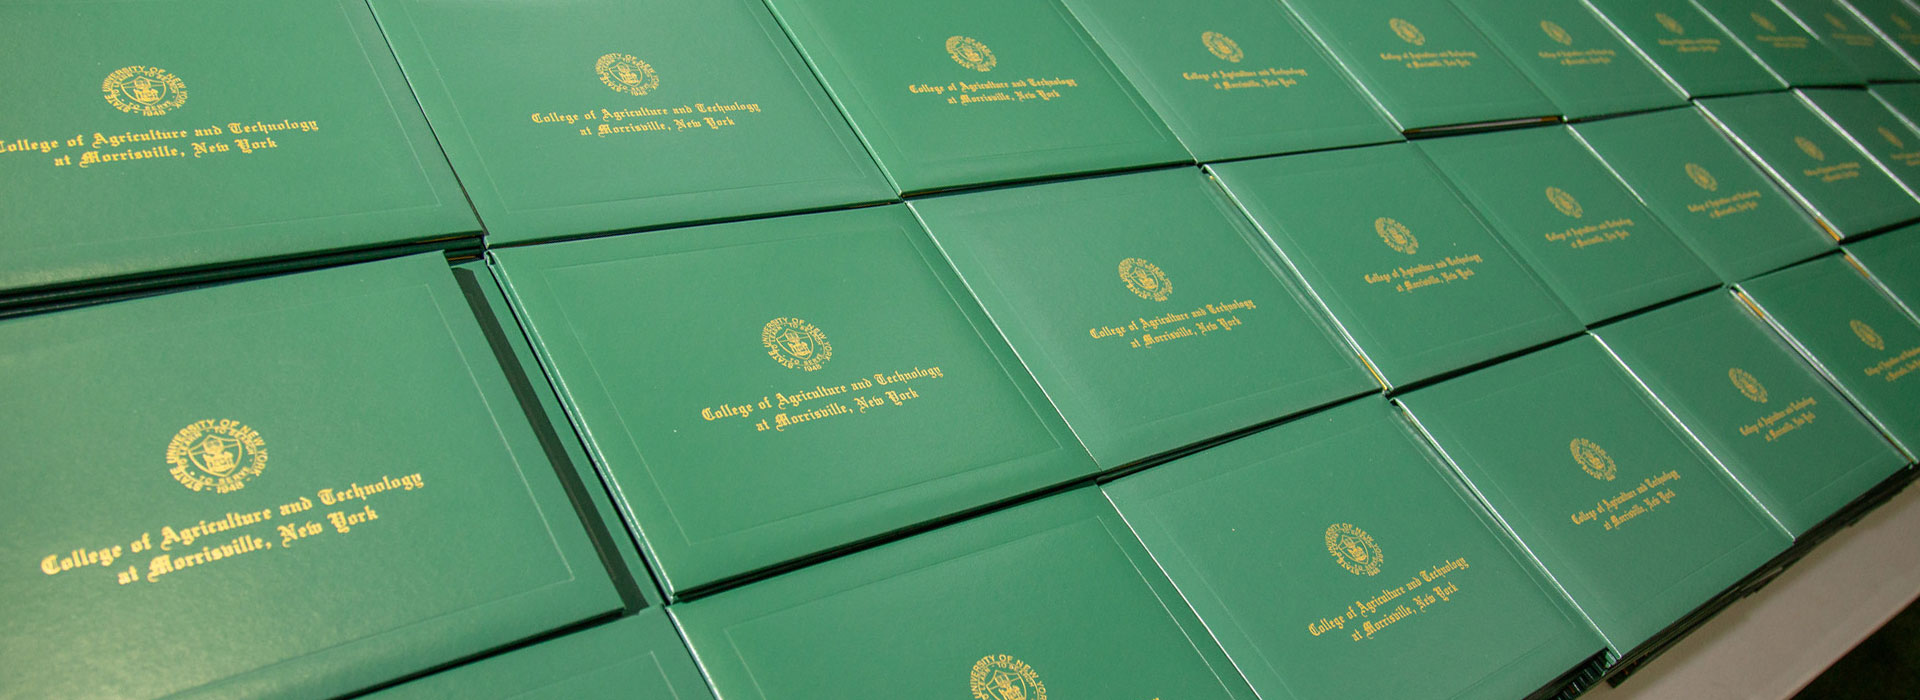 Diploma covers laid out for Commencement